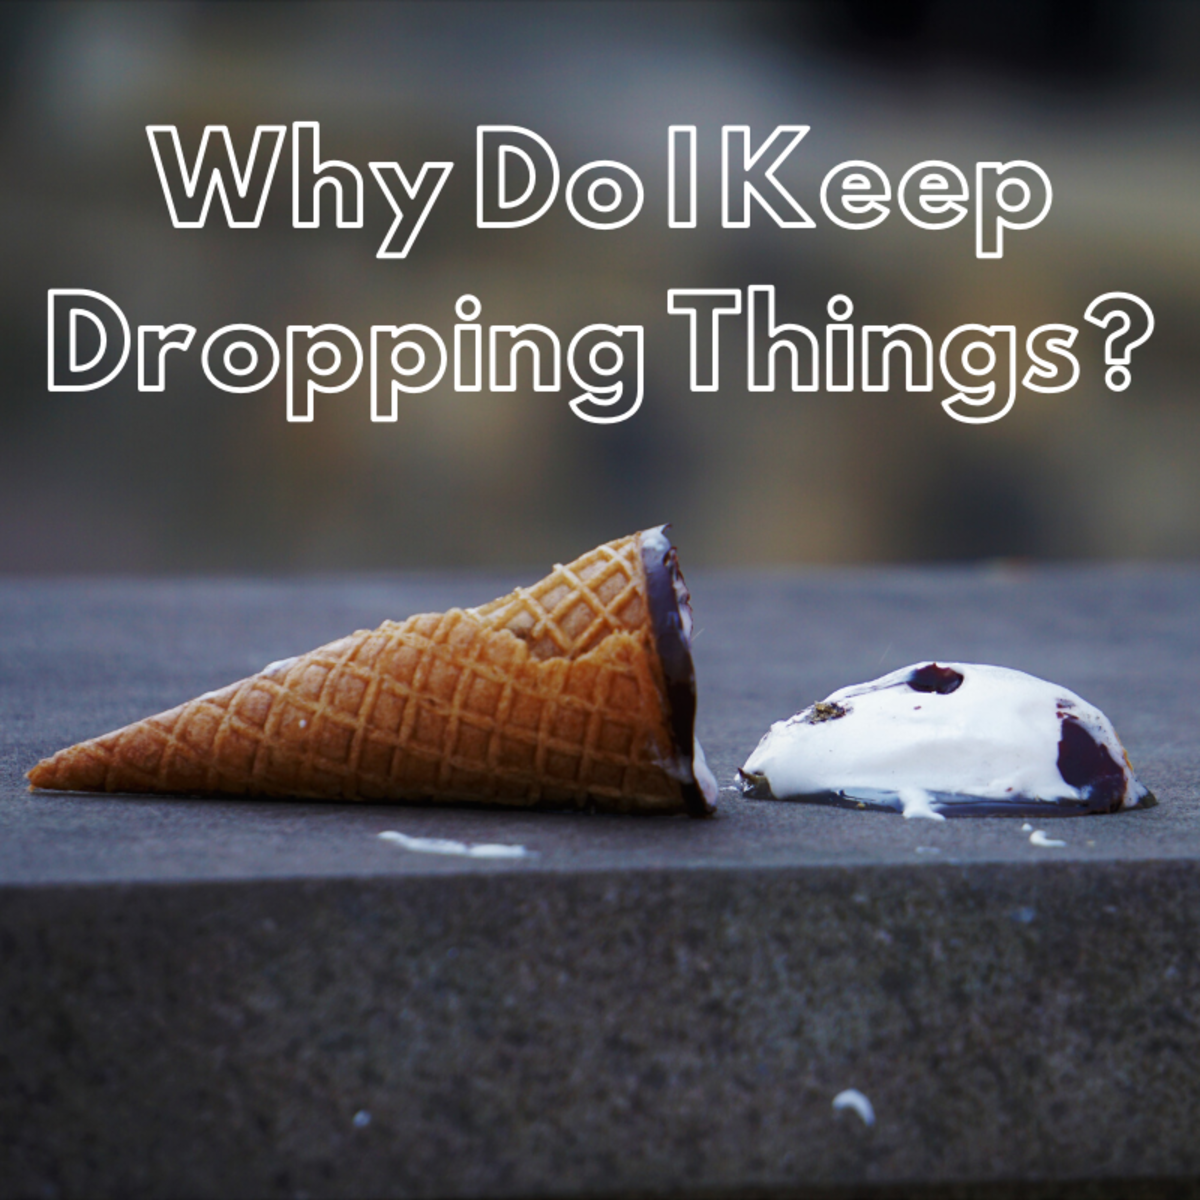 Why Do I Keep Dropping Things?